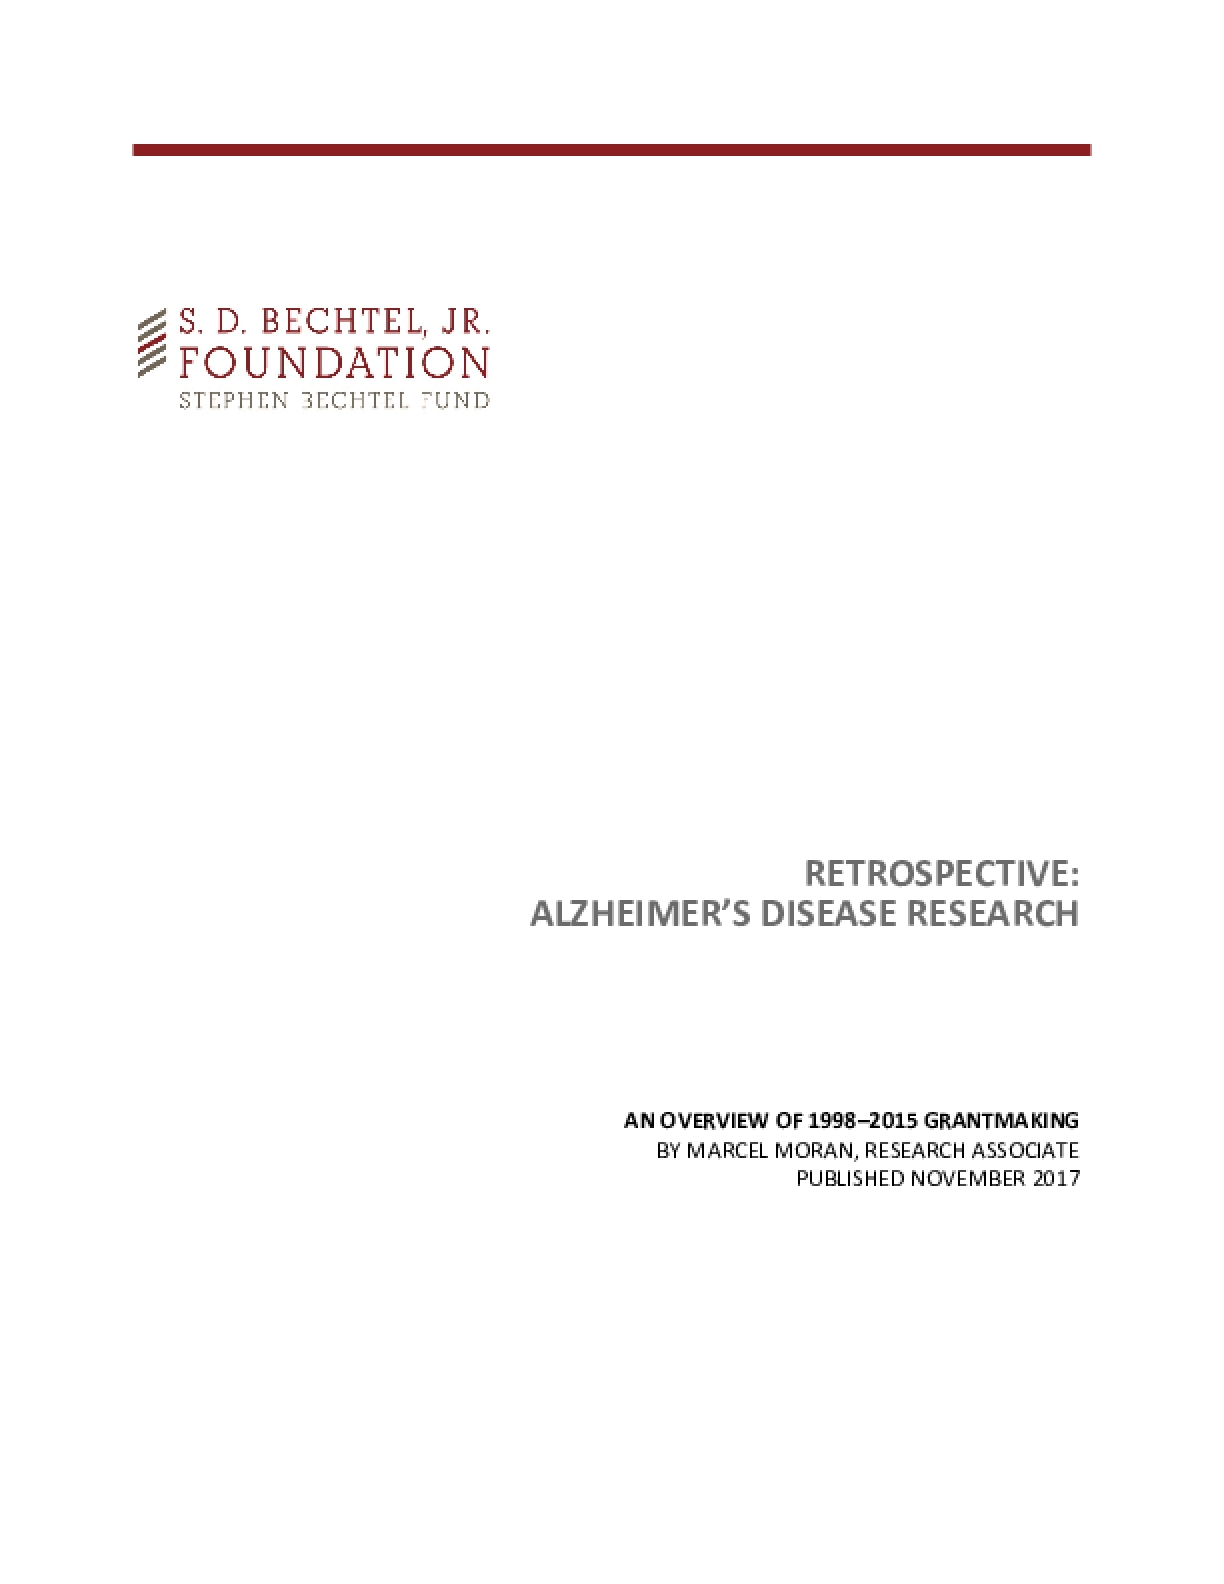 Retrospective: Alzheimer's Disease Research: An Overview of 1998-2015 Grantmaking